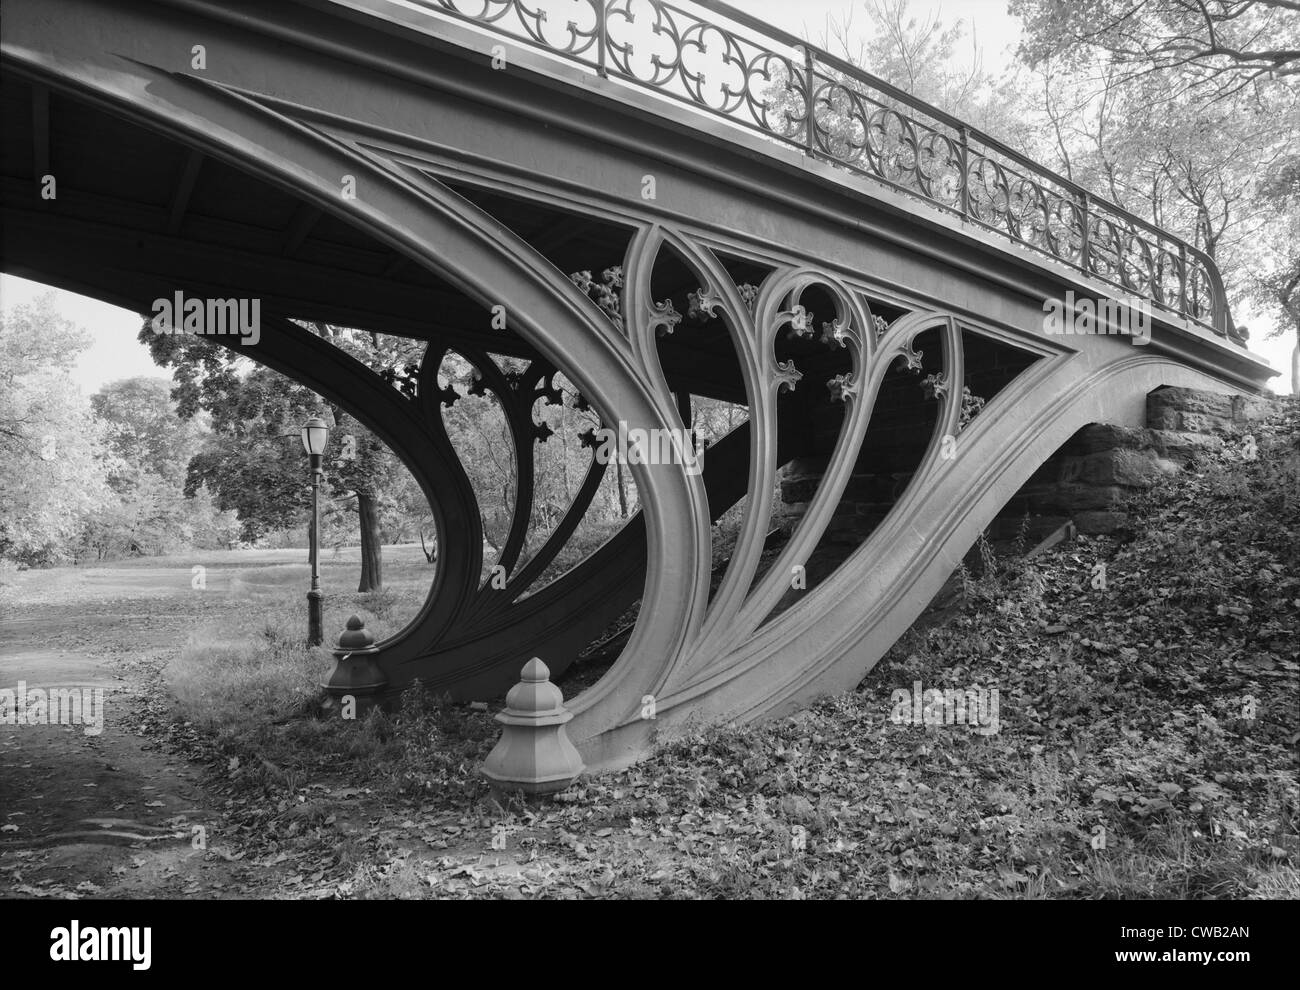 New York City, Central Park's Gothic Arch, view from bridlepath looking northeast showing detail of cast-iron - Stock Image